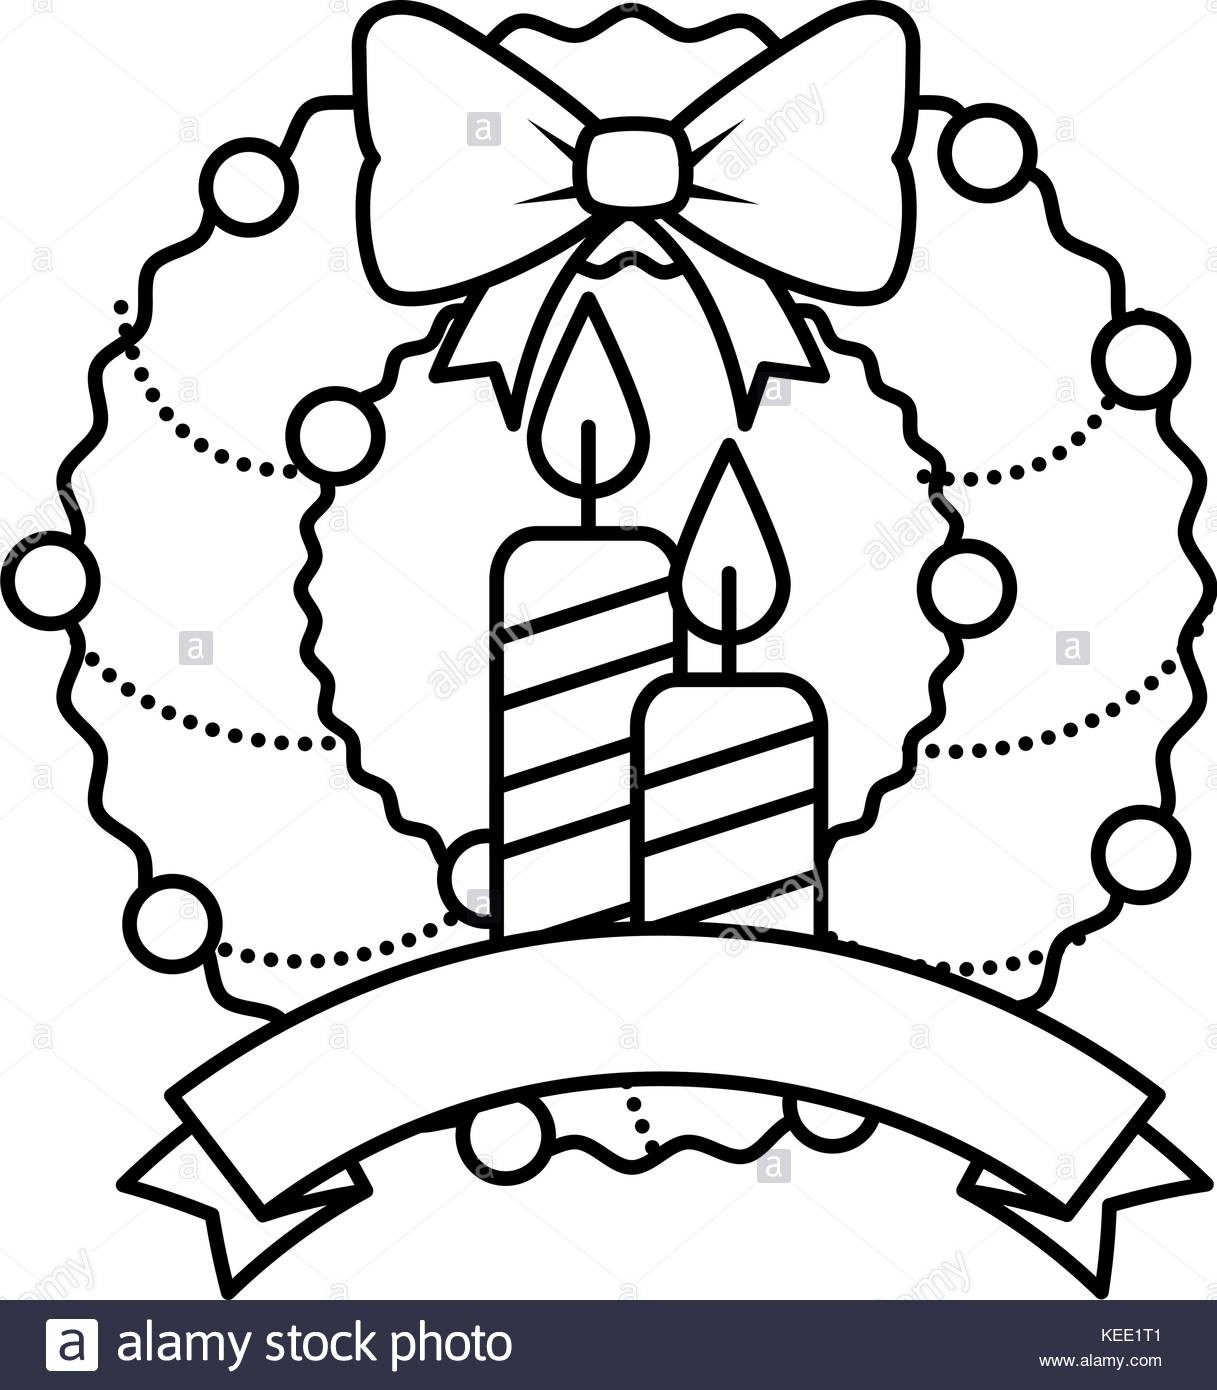 Christmas Garland Clipart Black And White.